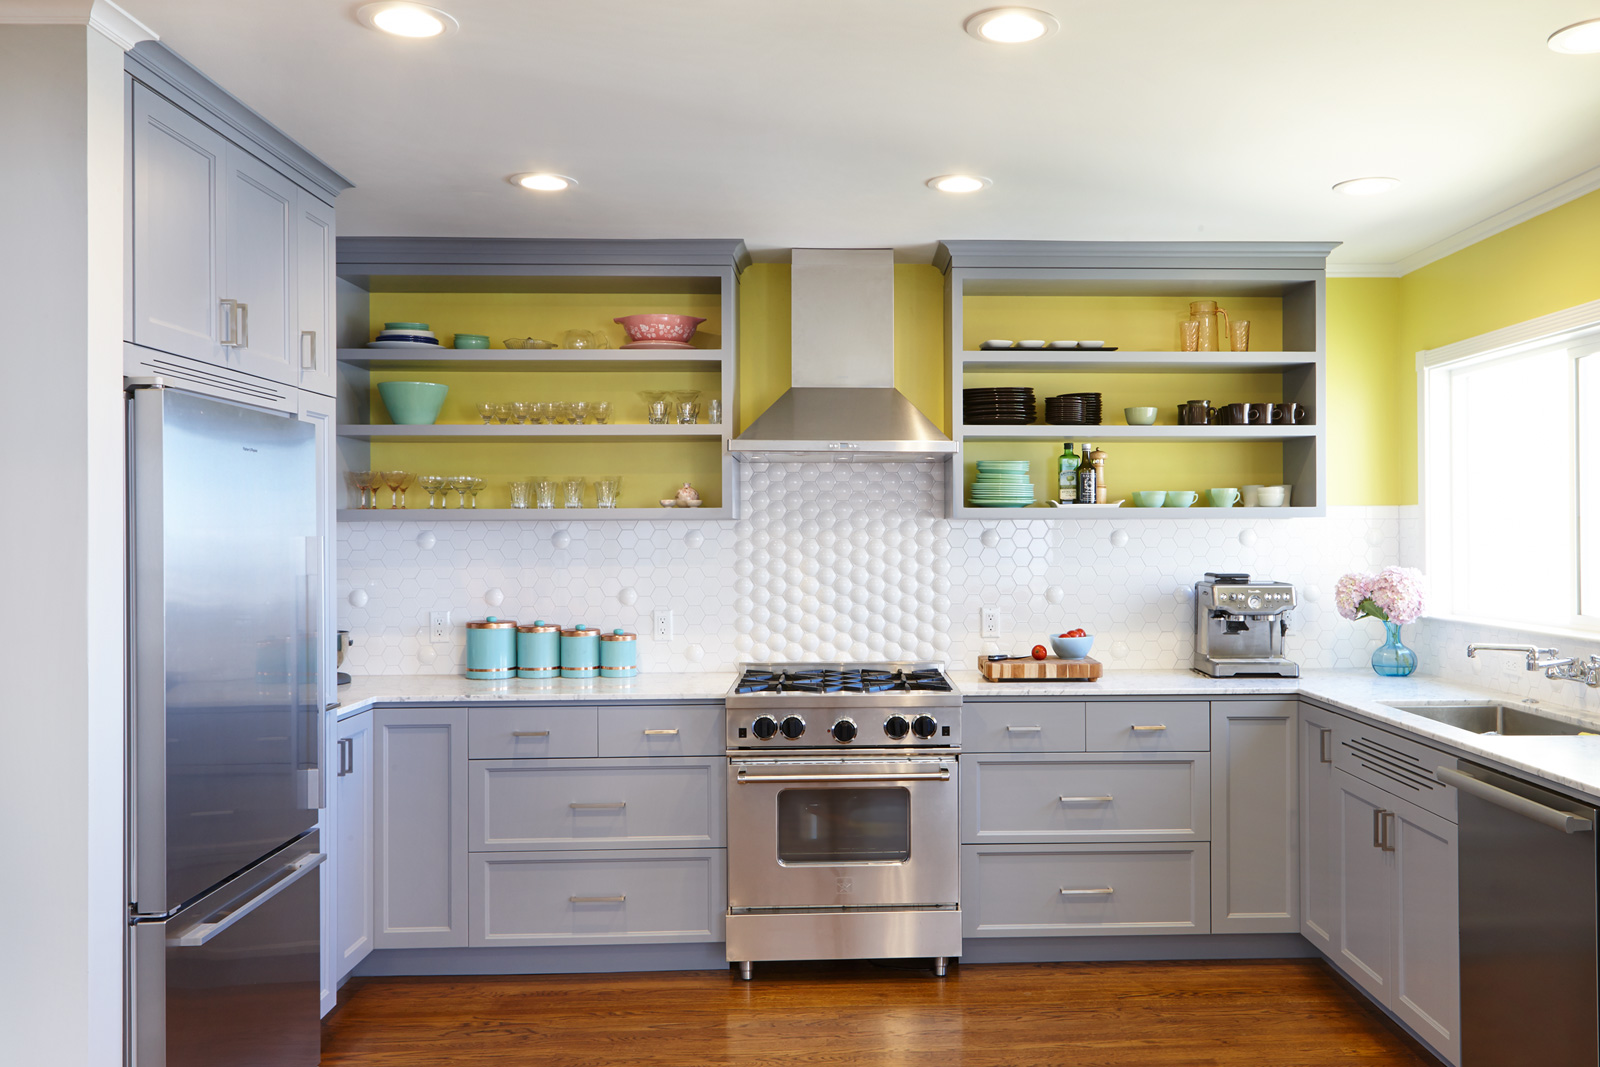 & Best Paint for Kitchen Cabinets | Paint for Kitchens